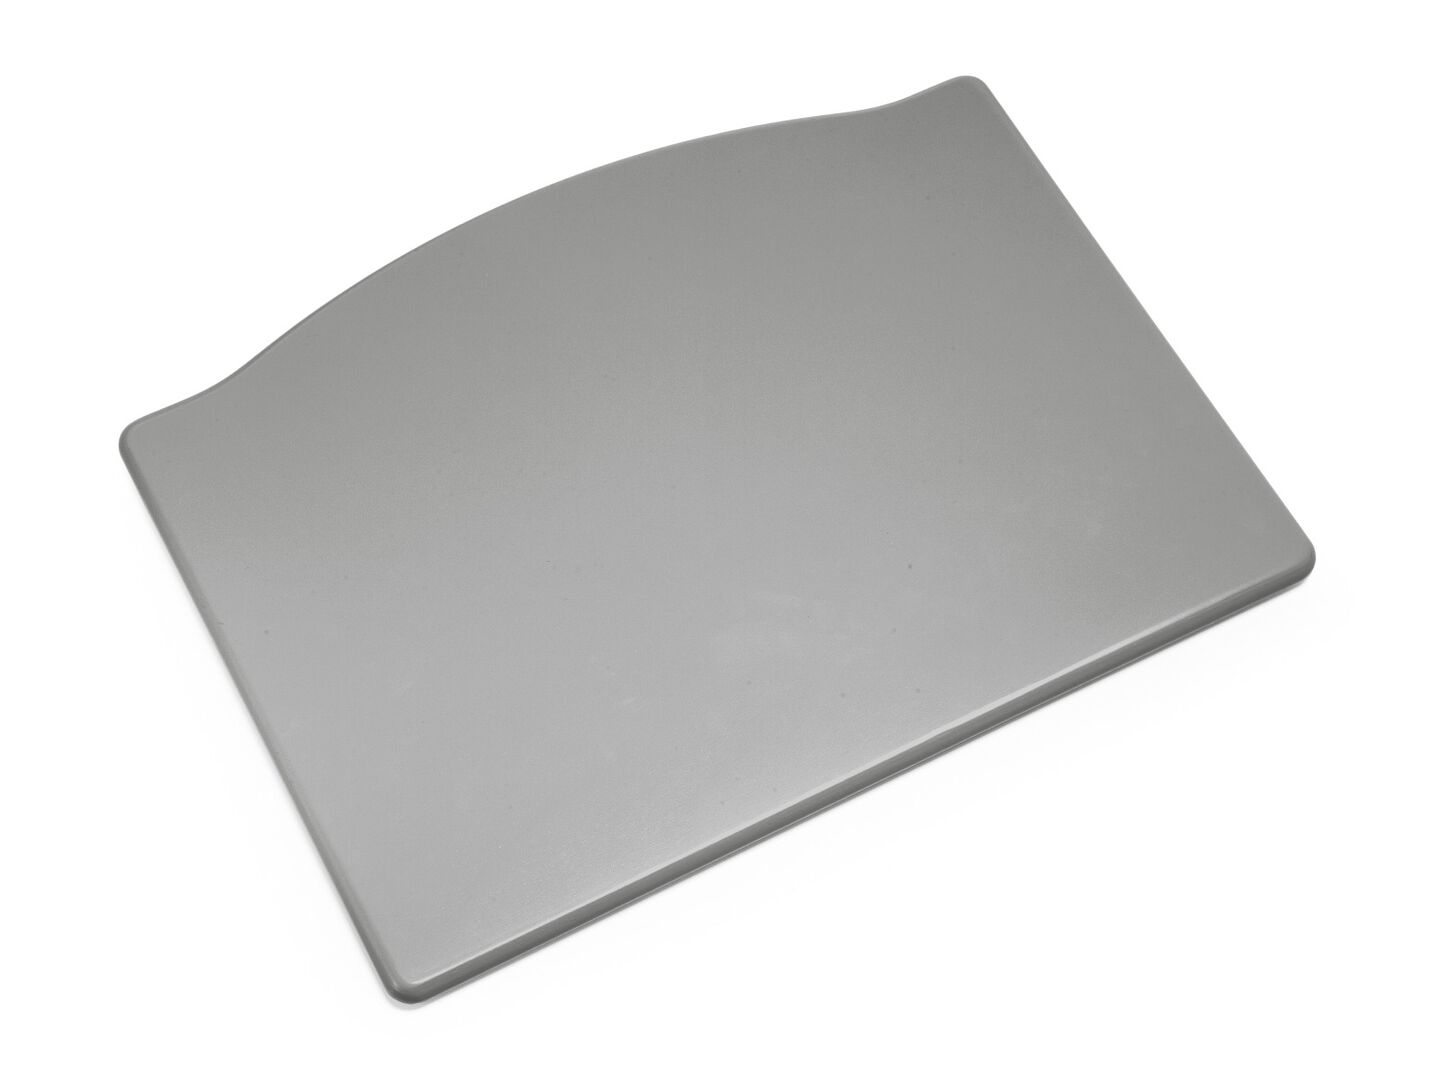 108928 Tripp Trapp Foot plate Storm grey (Spare part).